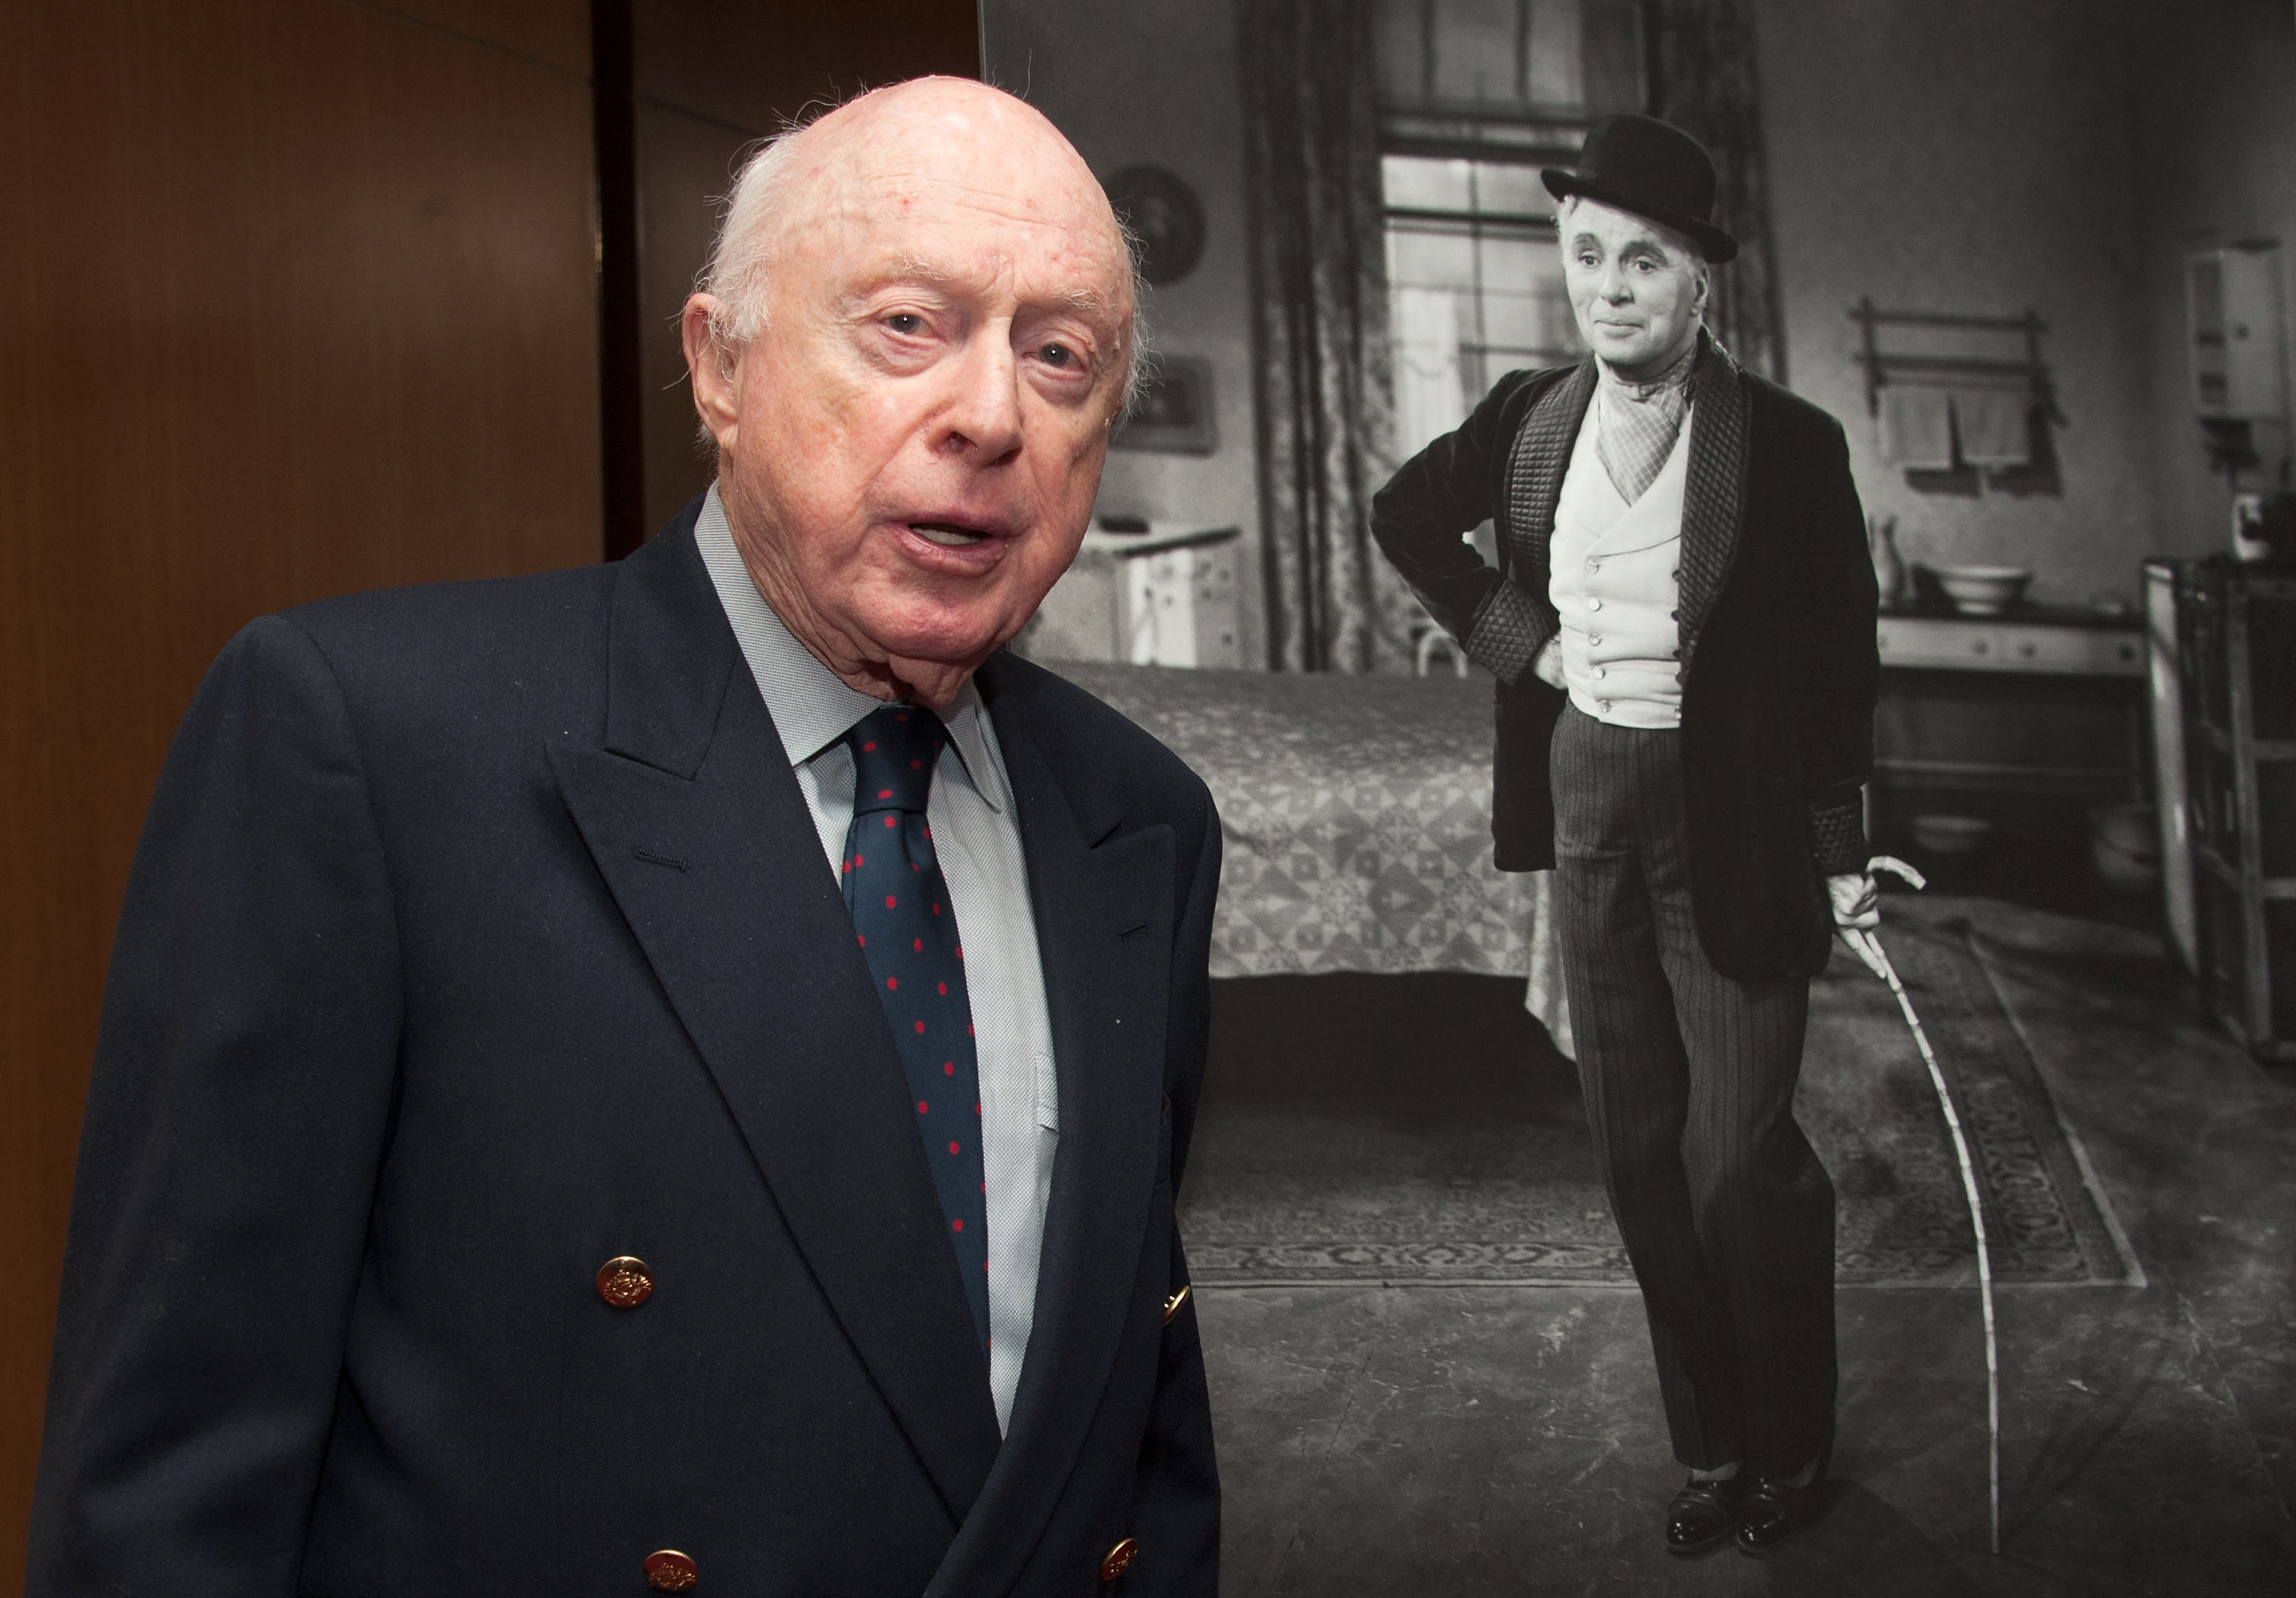 """BEVERLY HILLS, CA - OCTOBER 03: Actor Norman Lloyd attends The Academy Of Motion Picture Arts And Sciences' Presents The 60th Anniversary Screening Of """"Limelight"""" at AMPAS Samuel Goldwyn Theater on October 3, 2012 in Beverly Hills, California. (Photo by Valerie Macon/Getty Images)"""